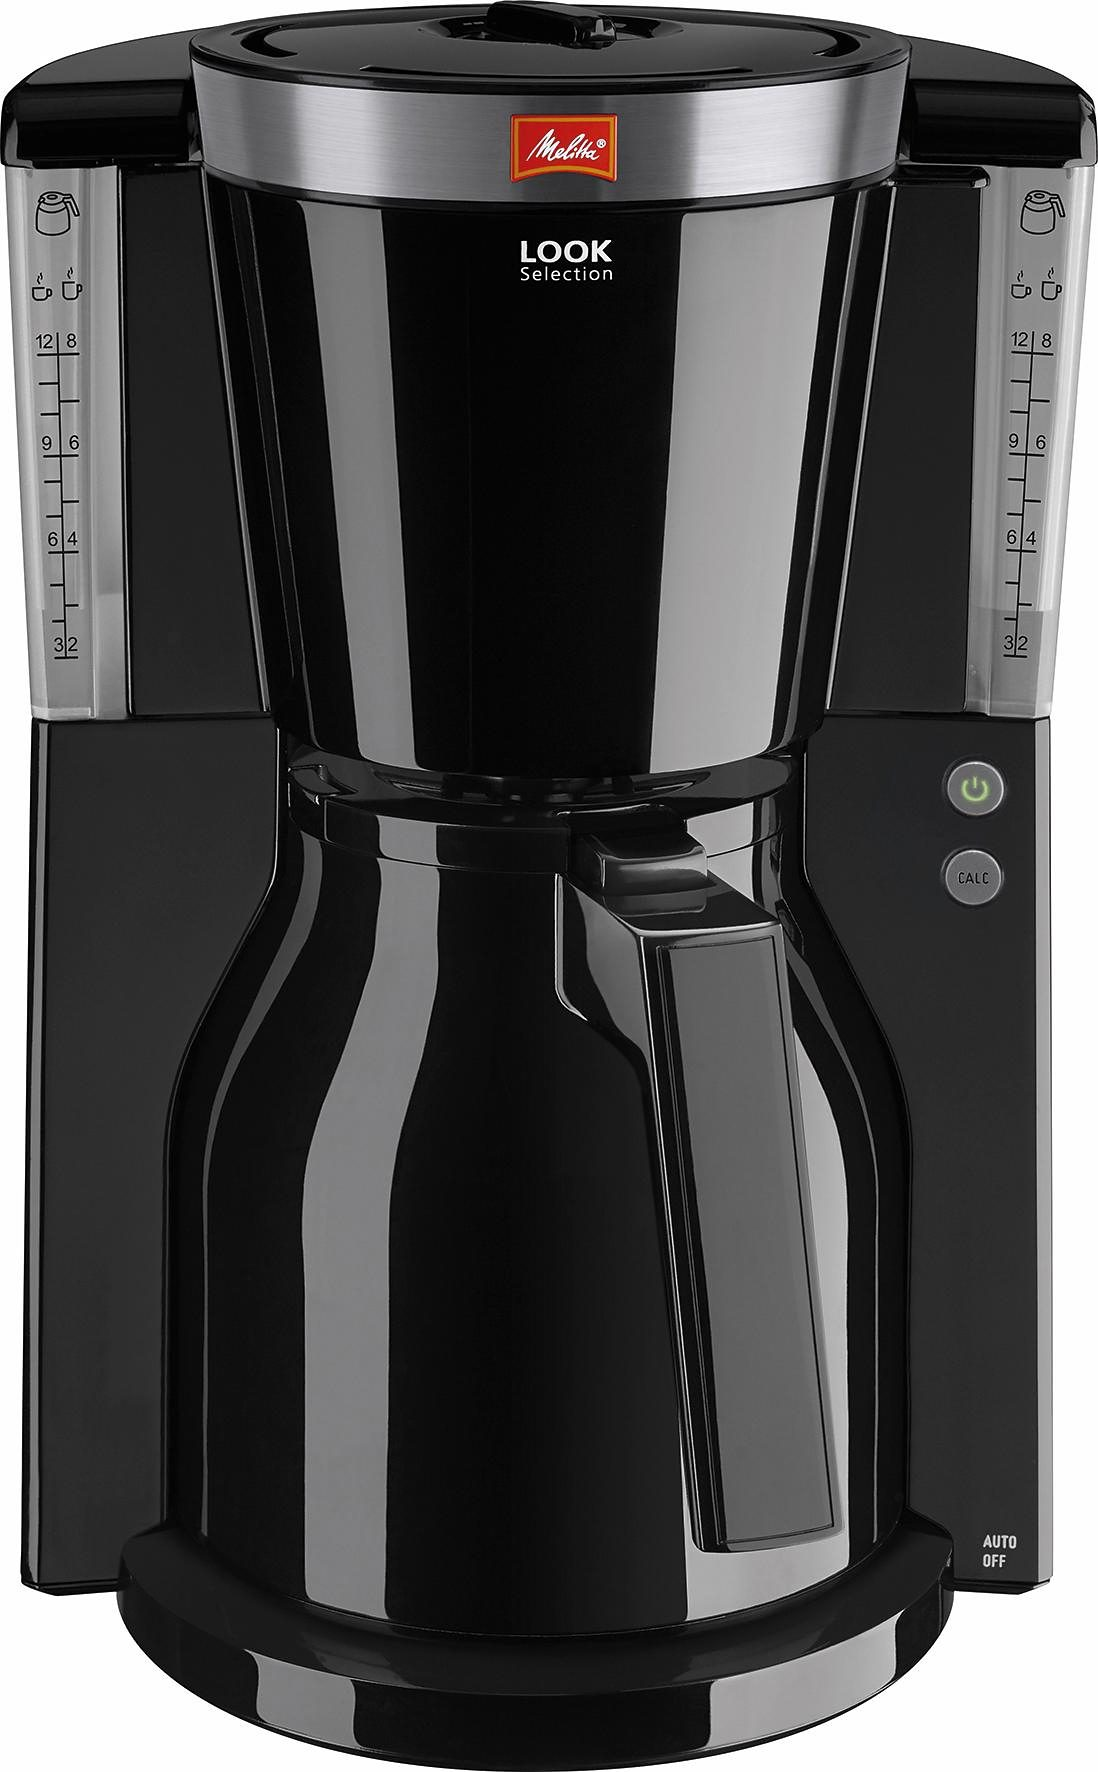 Melitta Kaffeemaschine Look® Therm Selection 1011-12, schwarz